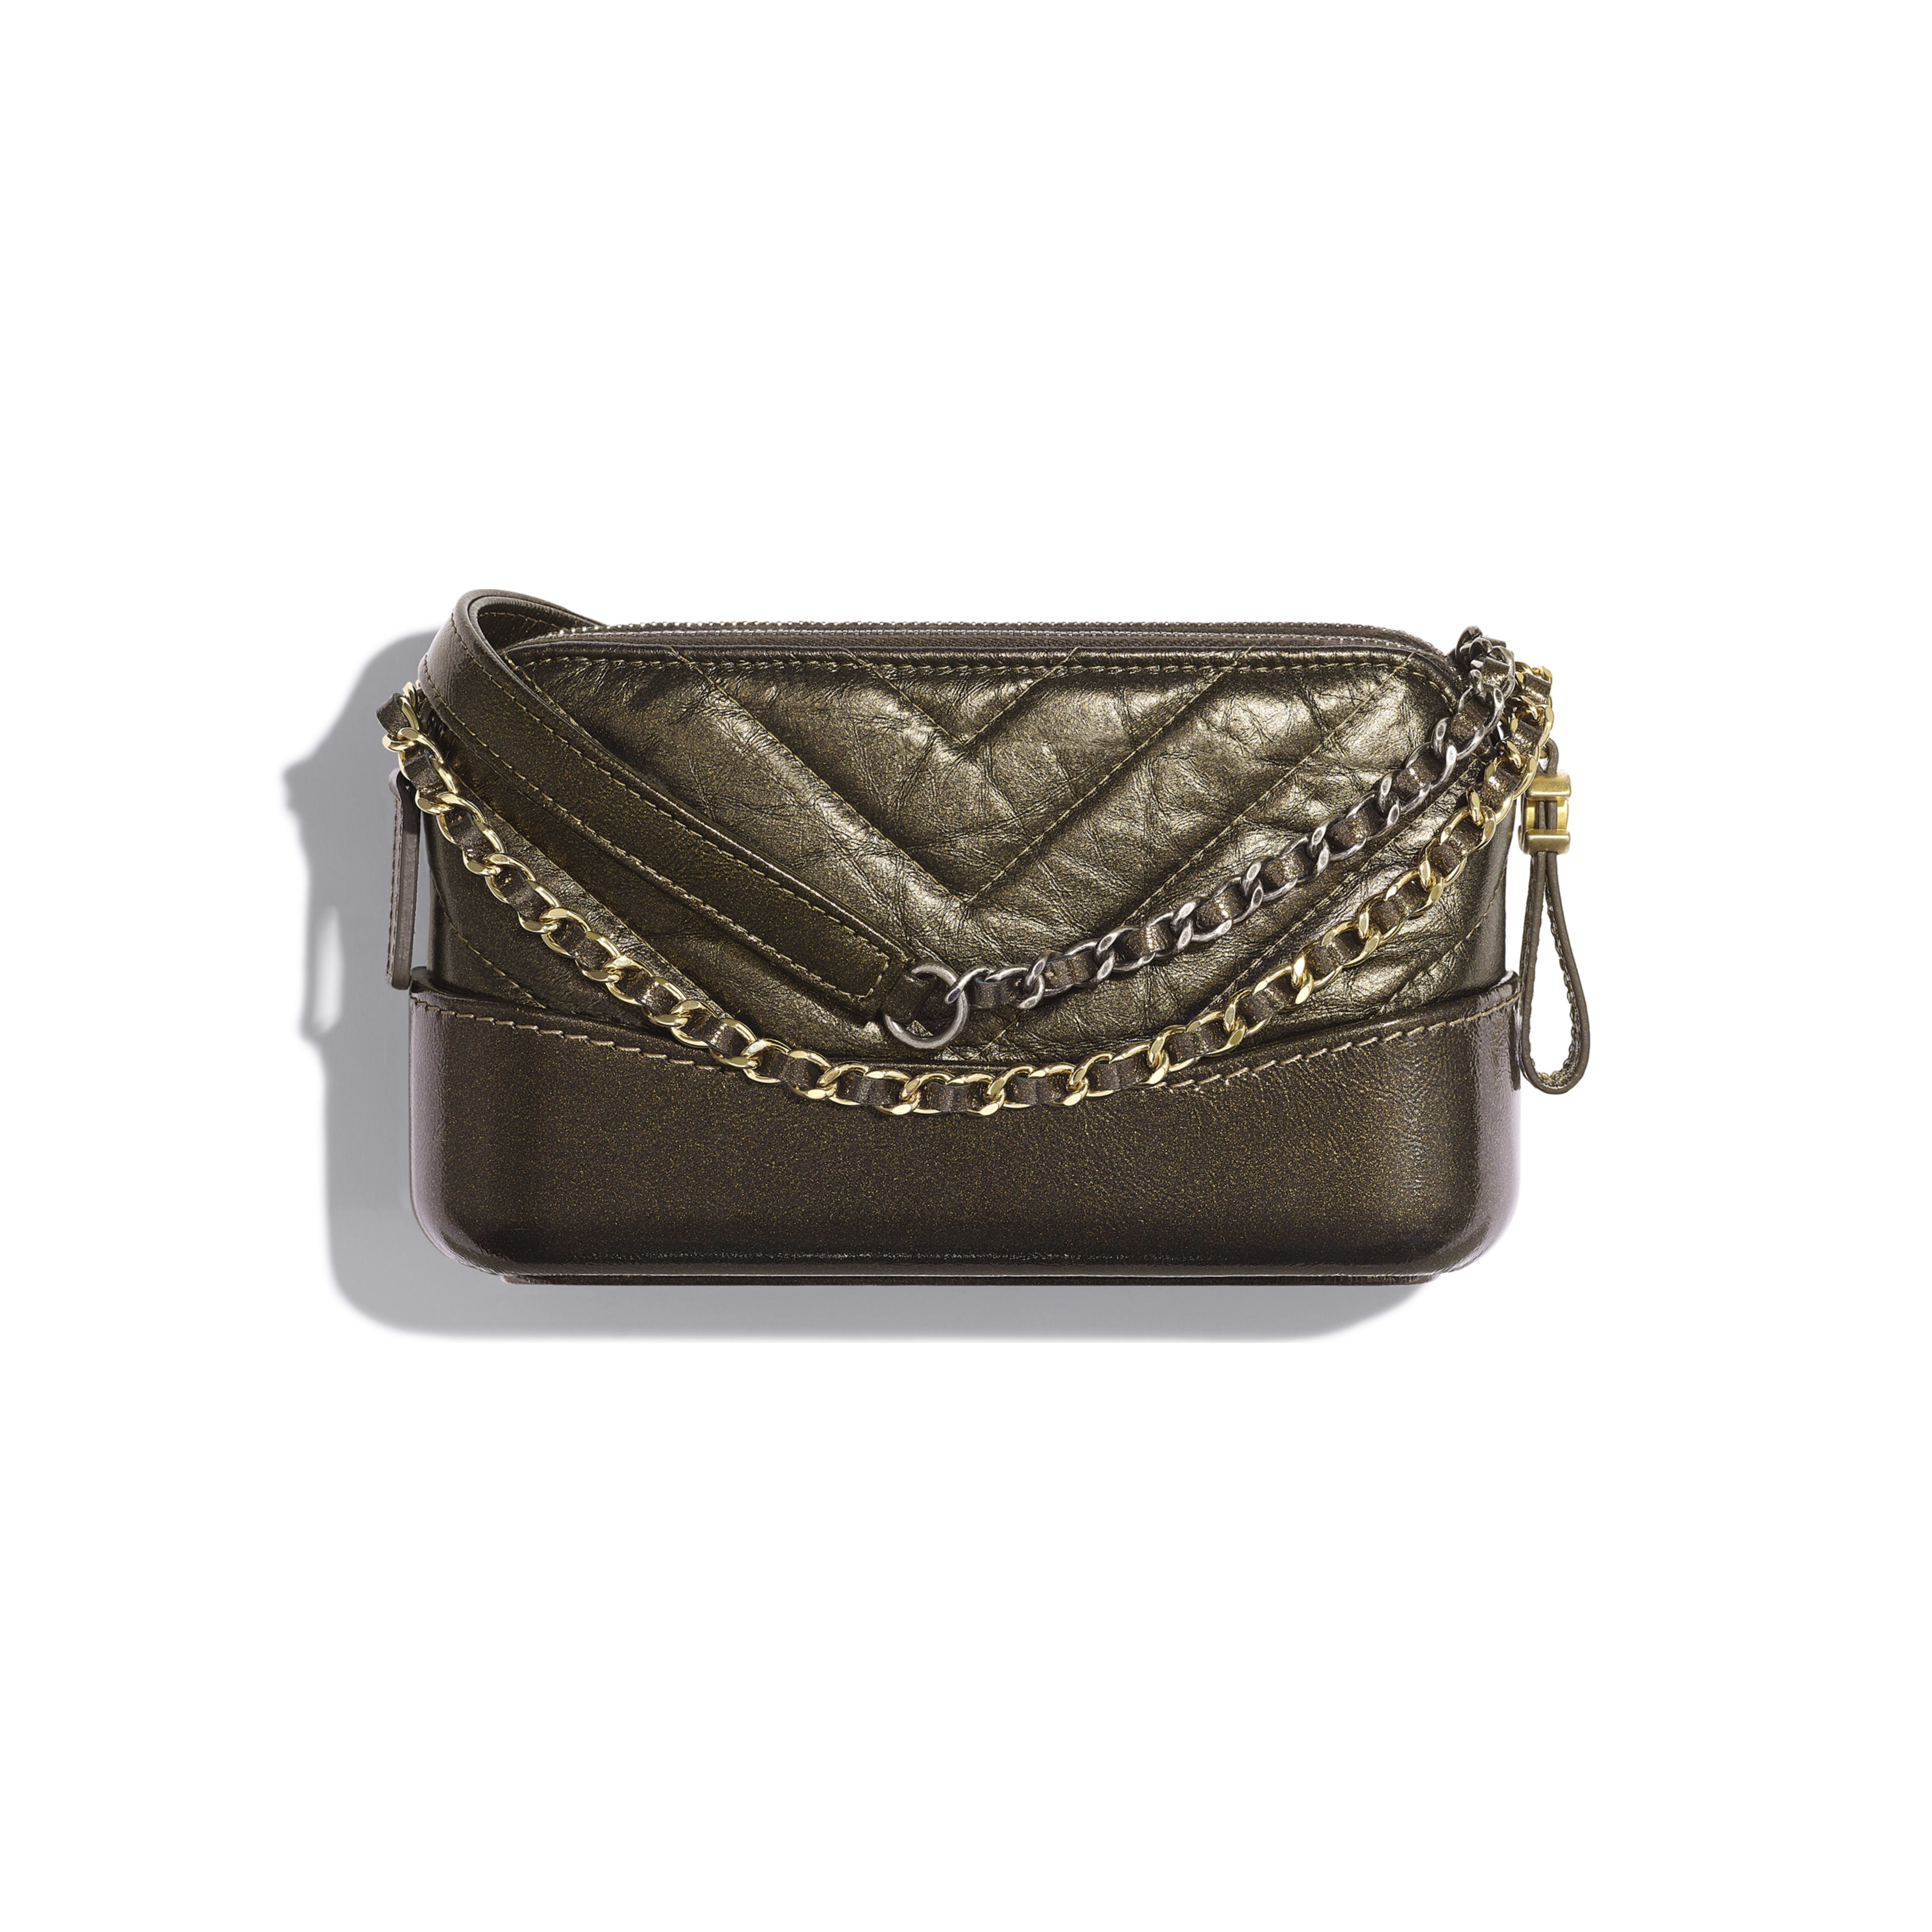 Clutch with Chain - Gold - Glittered Aged Calfskin, Gold-Tone & Silver-Tone Metal - Alternative view - see full sized version